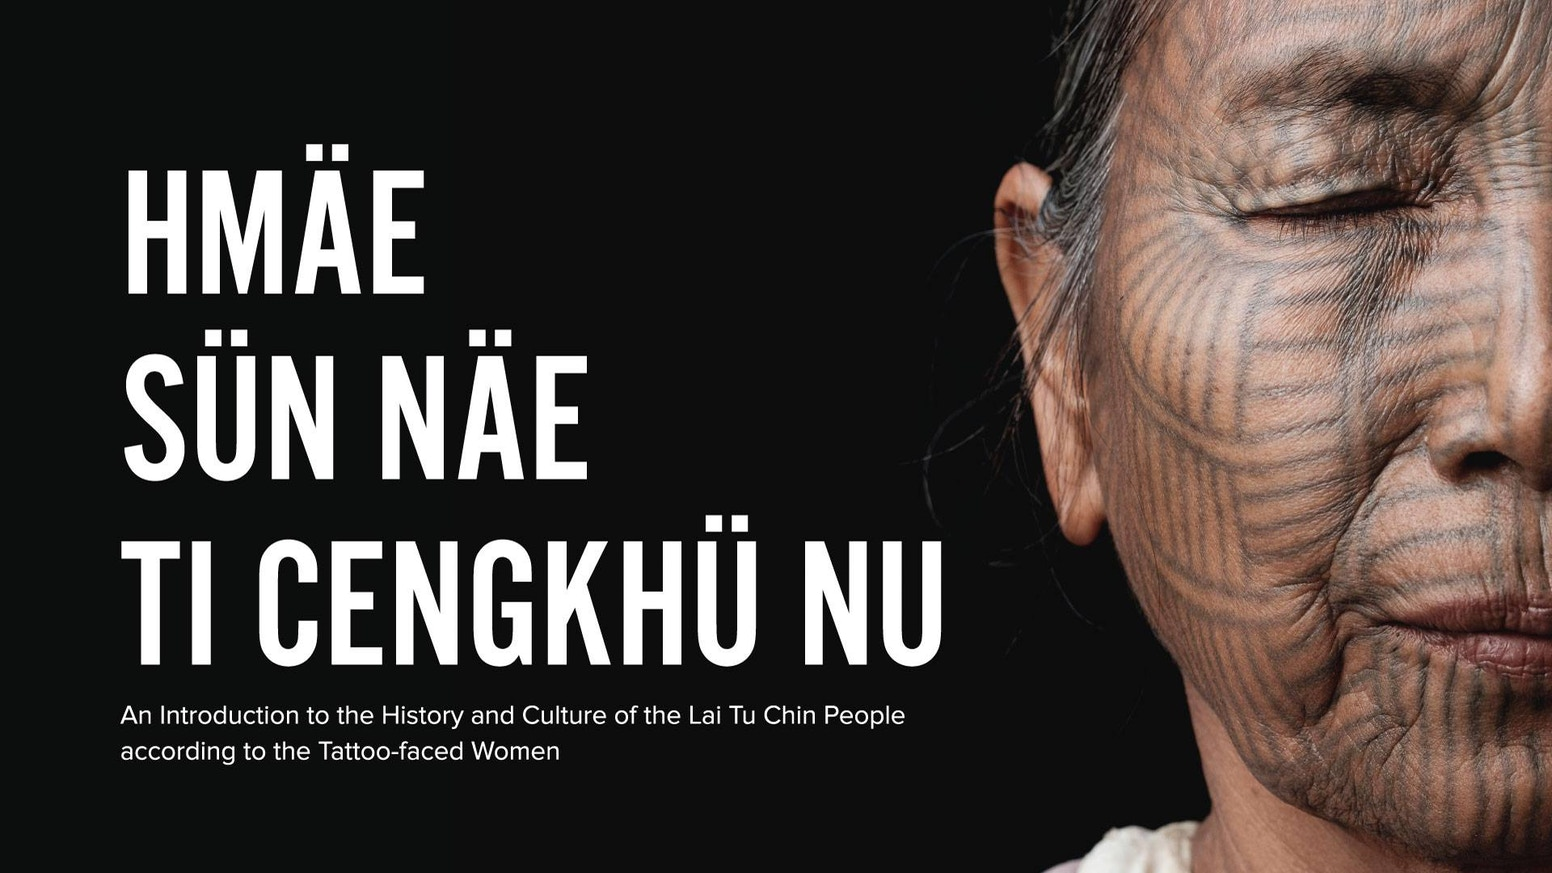 A photographic book and video documentary of the disappearing culture of facial tattoos among the Lai Tu Chin people of Myanmar.